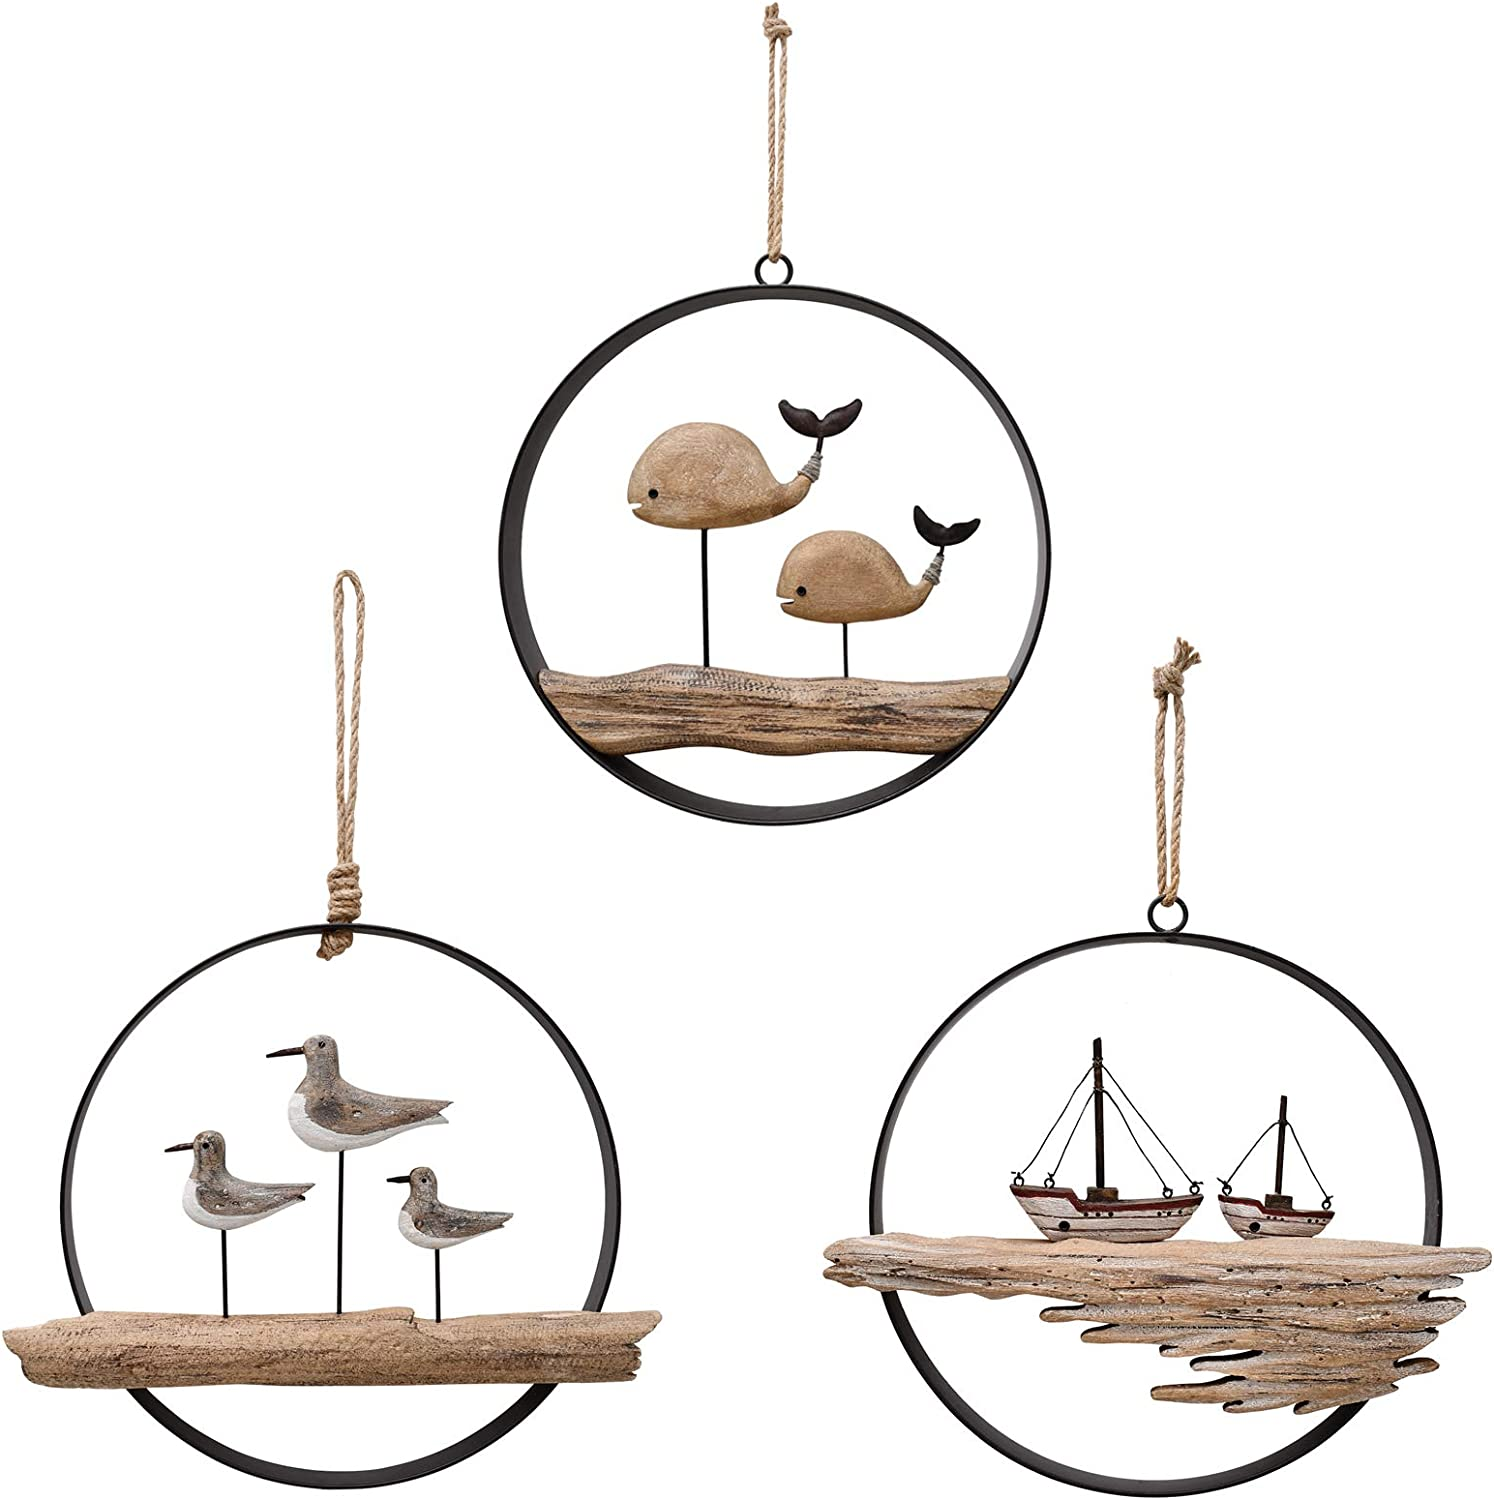 Fashionable Rustic Wood Whale Seagull Boat Wall Nautical Decor New Orleans Mall Hanging